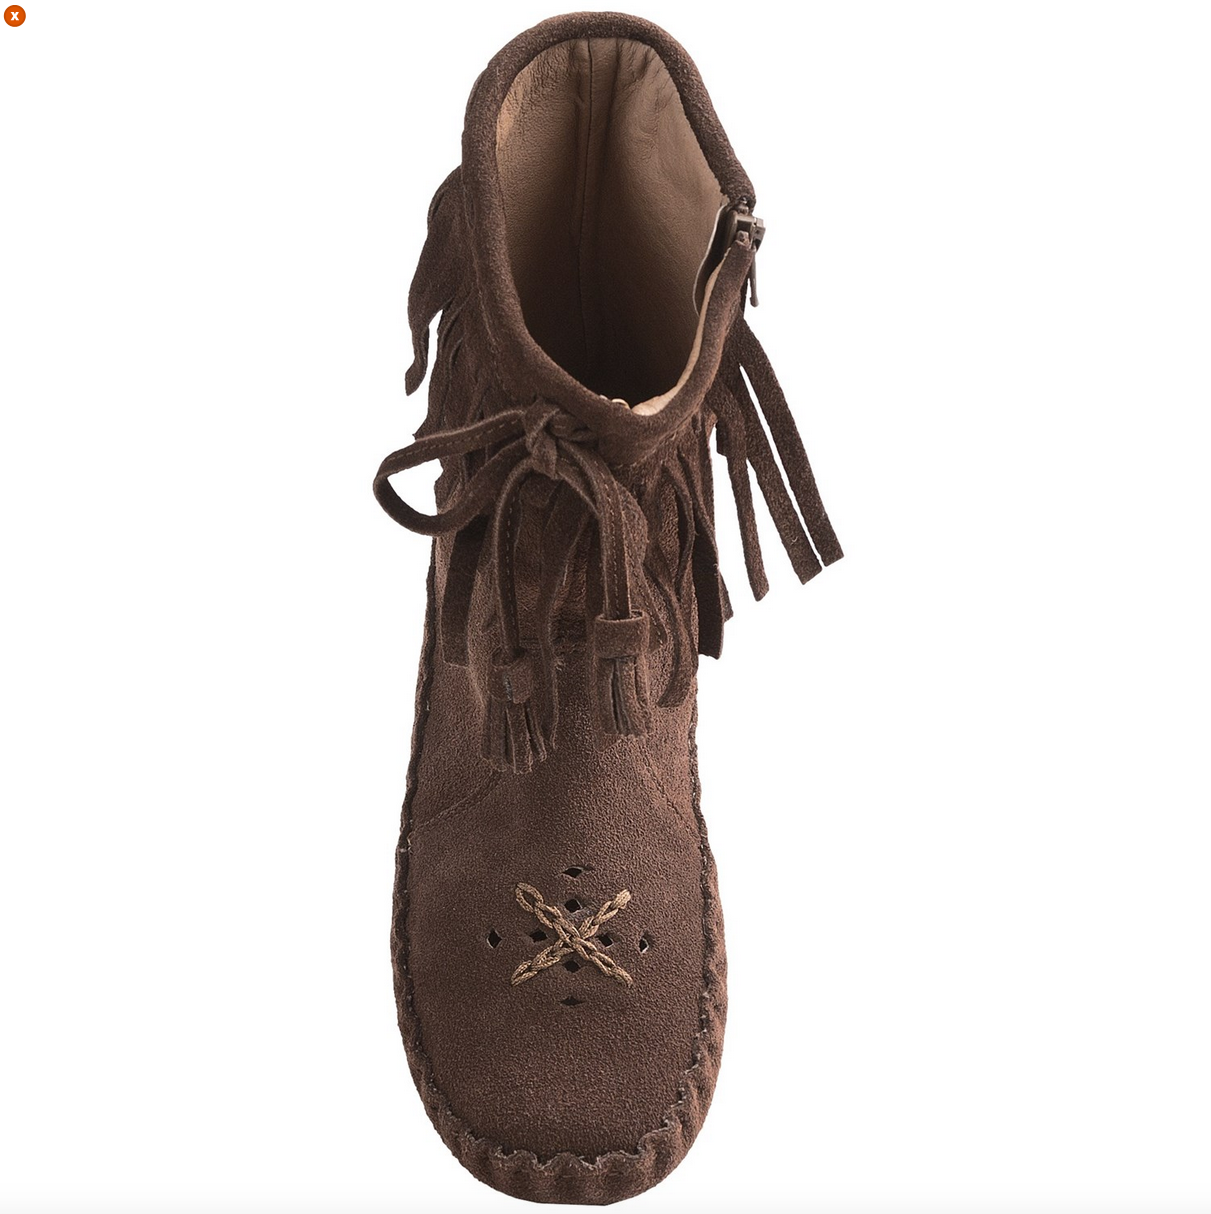 100 TINA PEACE Chocolate MOCCASINS Chocolate PEACE Braun PM447410 181849